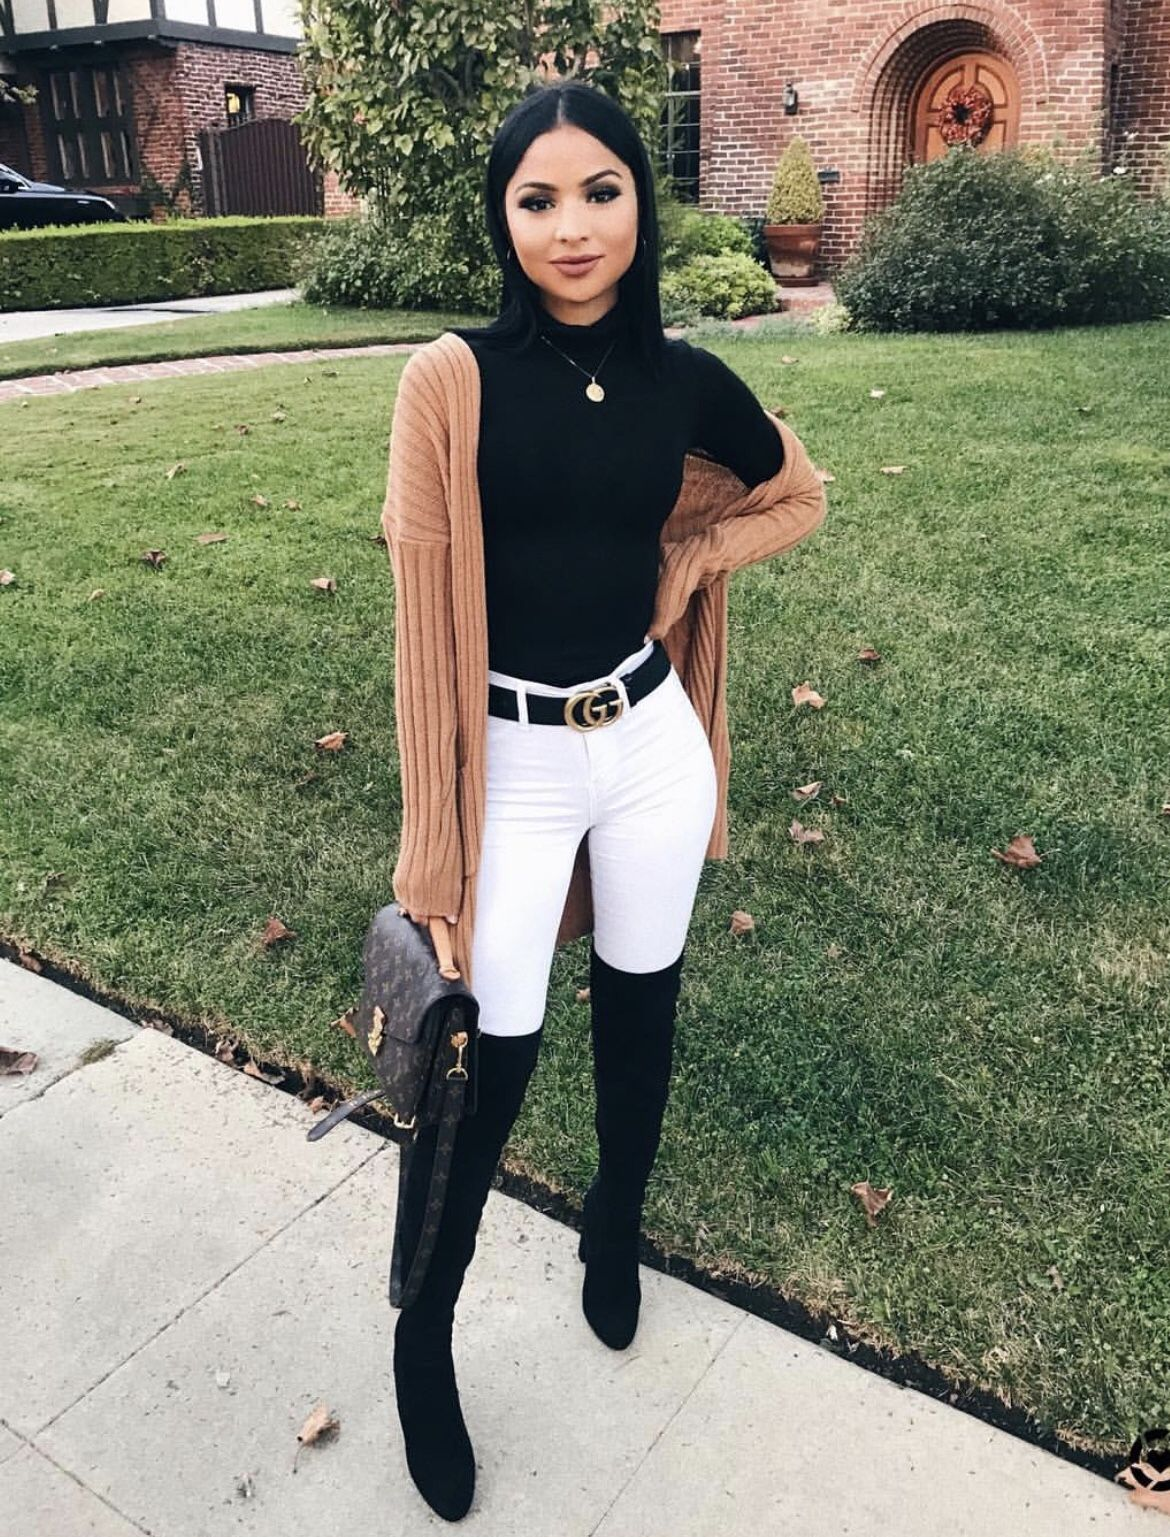 s t y l e p u r p o s e s  @journeywithkay  Trendy fall outfits